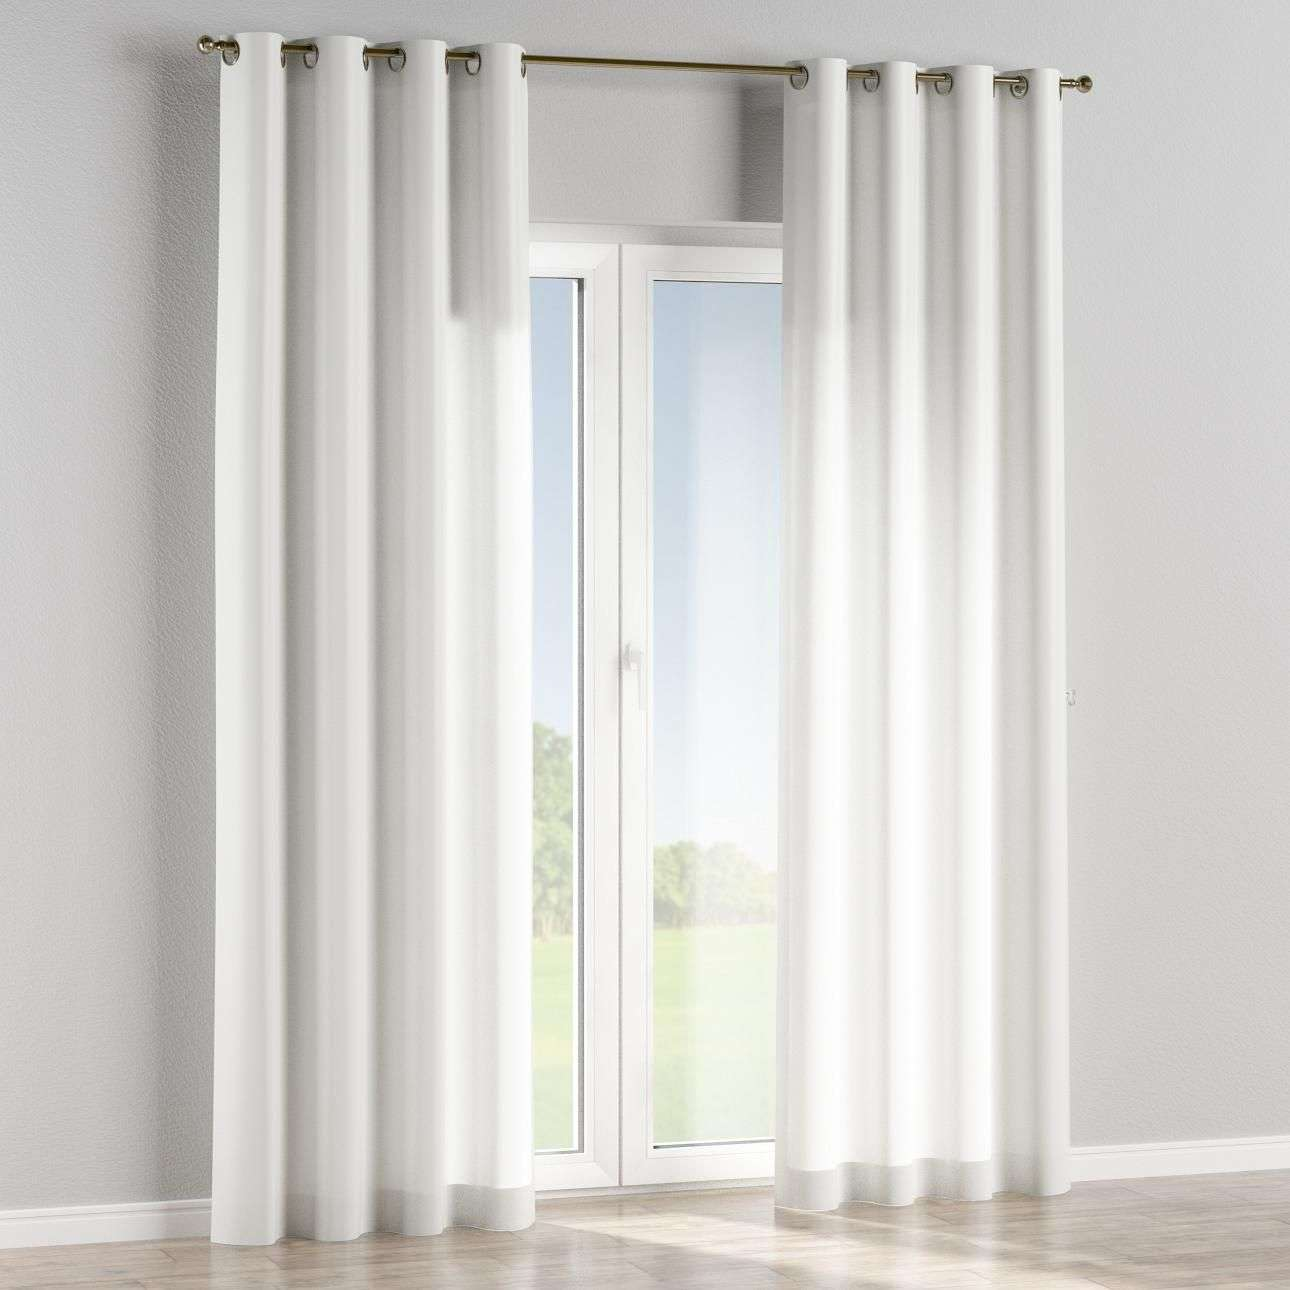 Eyelet lined curtains in collection Nordic, fabric: 630-08